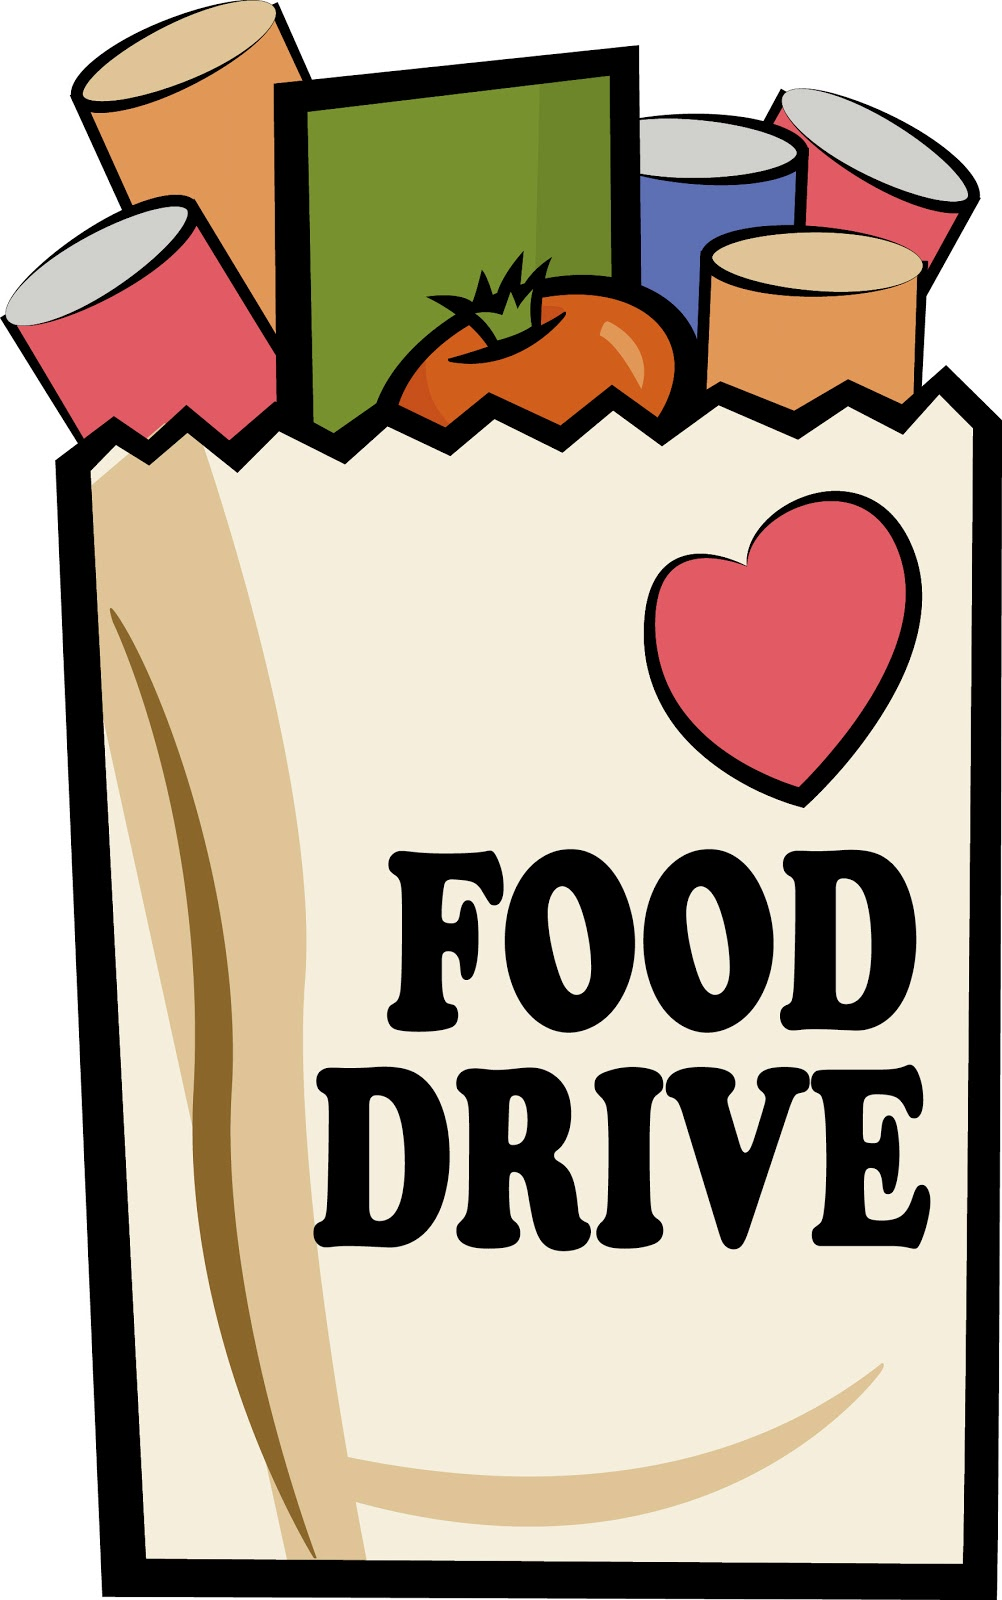 canned food drive posters clipart panda free clipart images rh clipartpanda com canned food drive clipart food drive clip art free